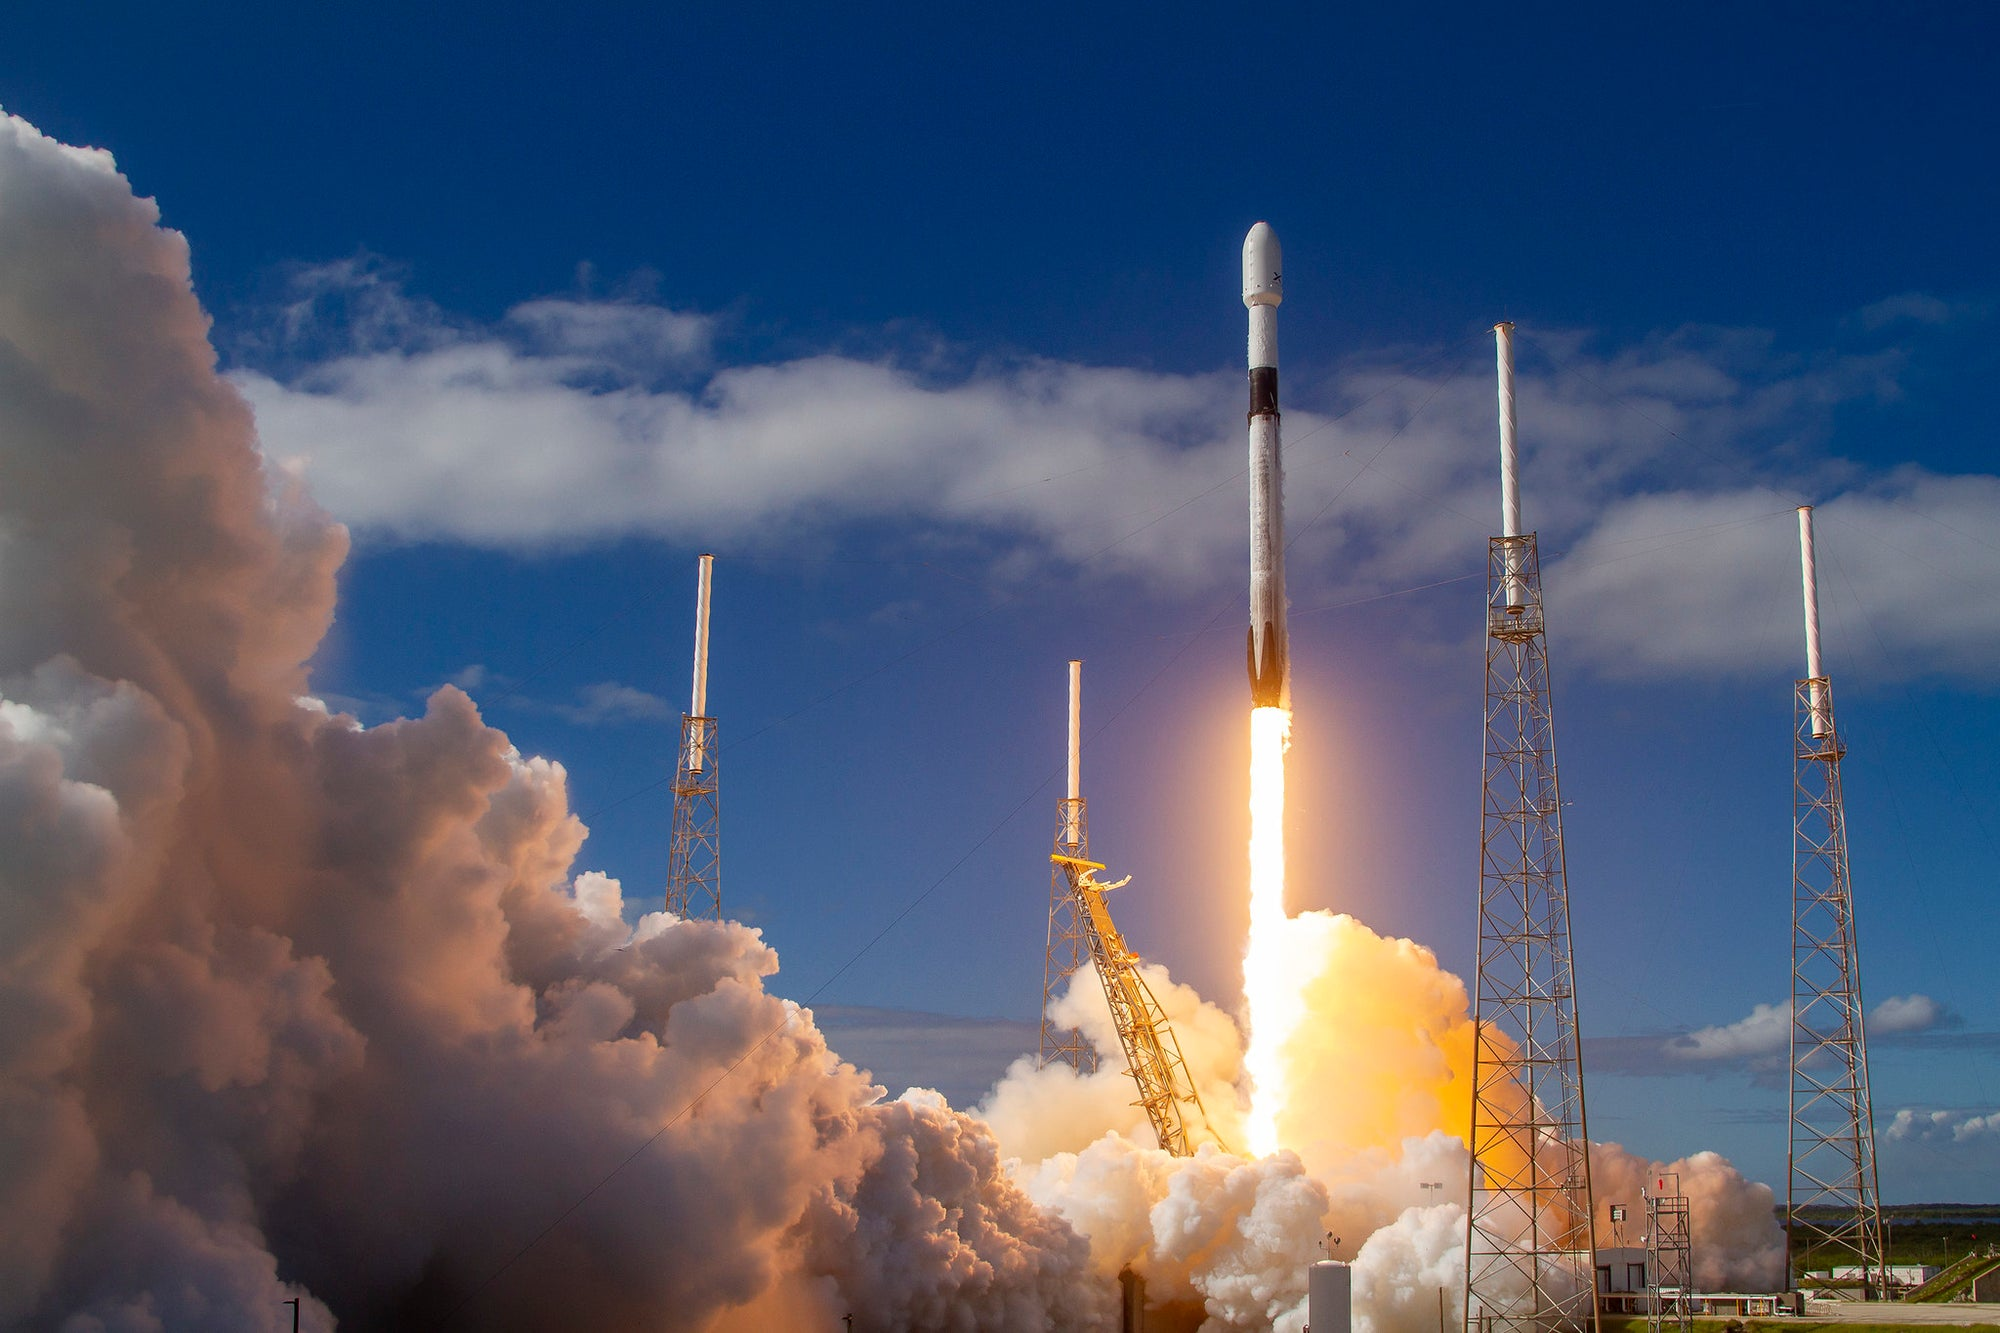 Spaceflight Inc. selects SpaceX's Rideshare Program to launch satellites for multiple companies